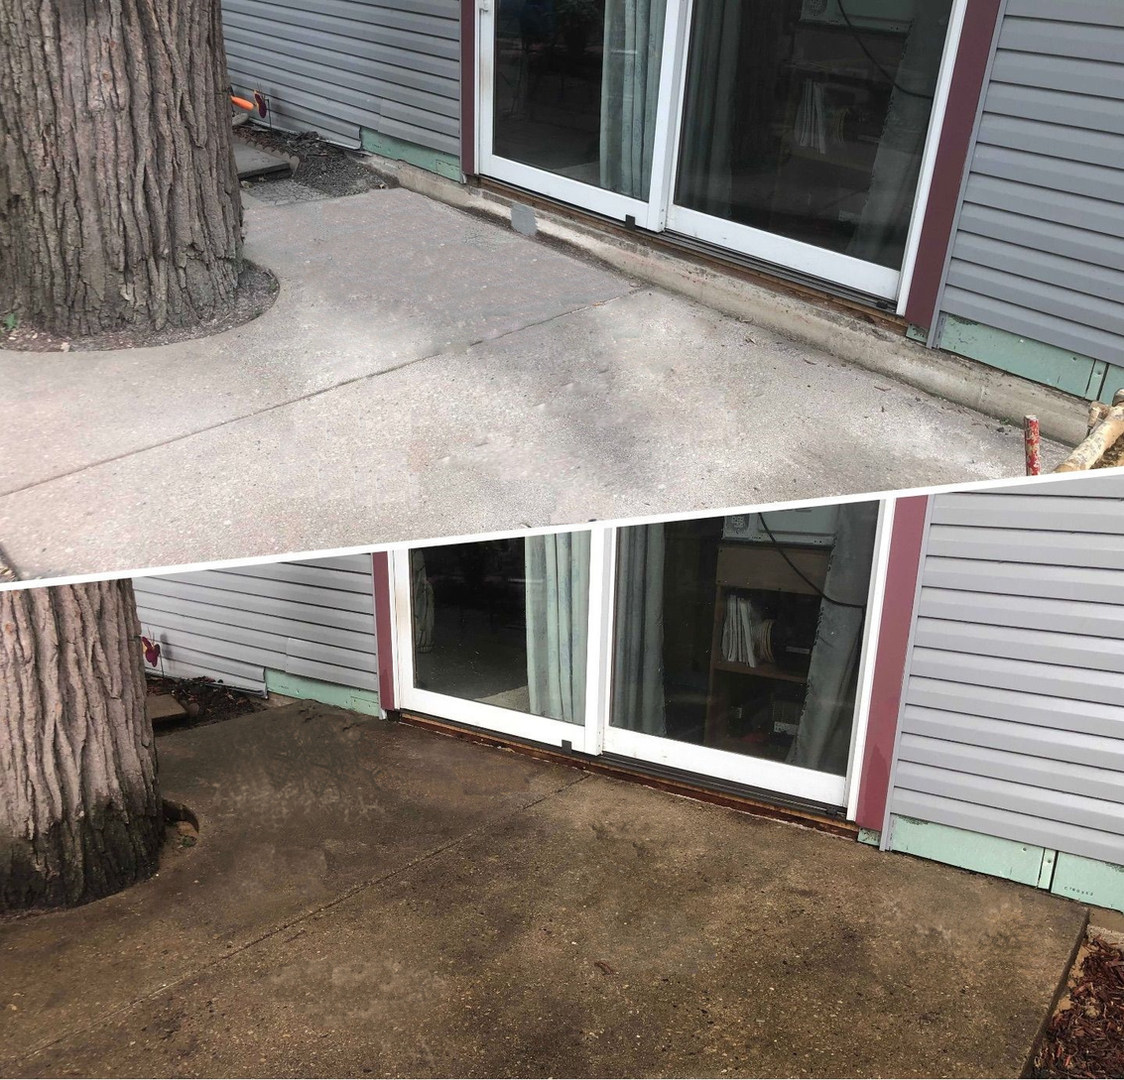 Lifting, Re-Pitching Concrete Patio Slabs to Avoid Water Flooding the House